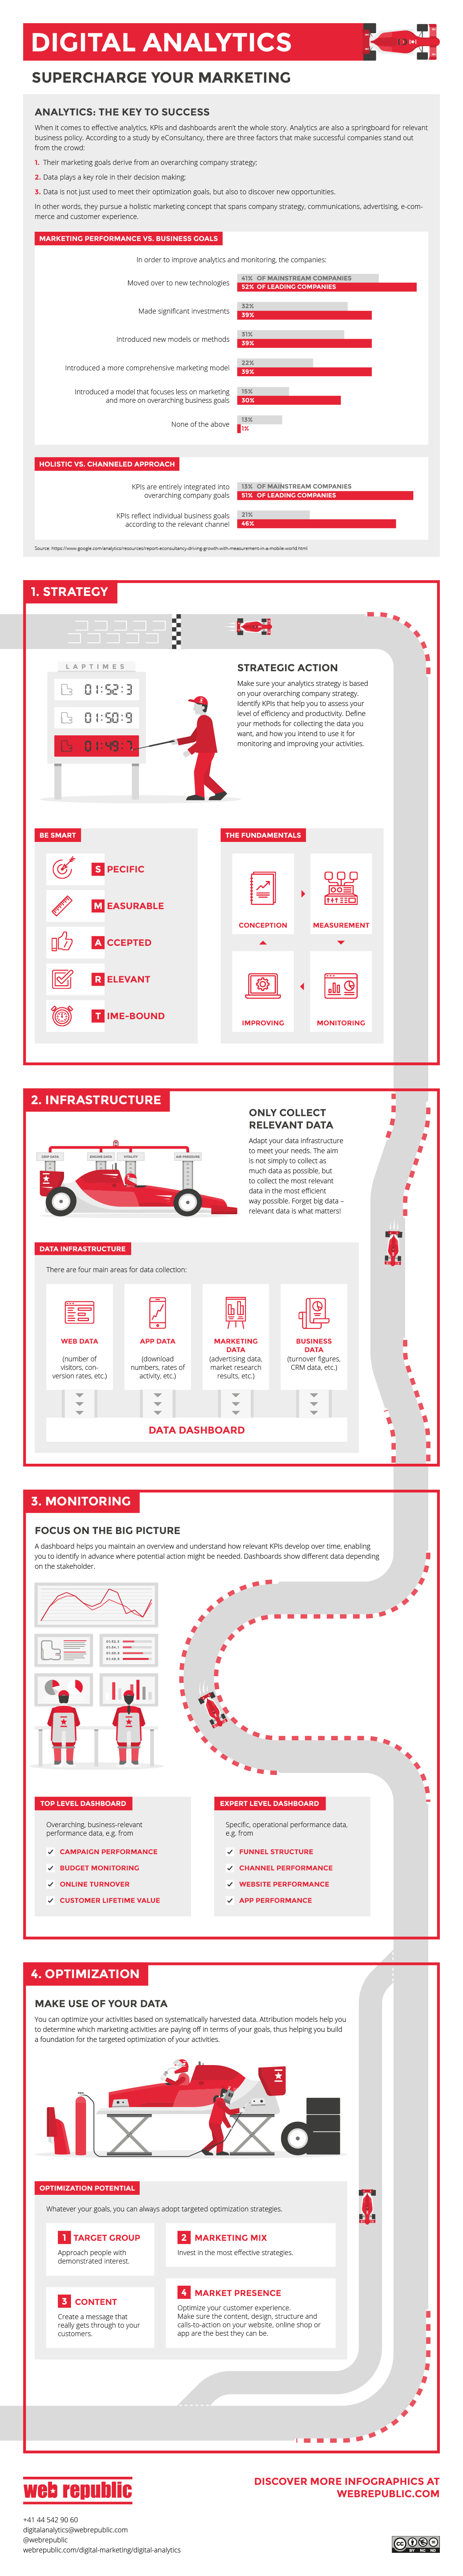 Digital Analytics: The Next-Level Booster for Your Marketing Template - Infographic